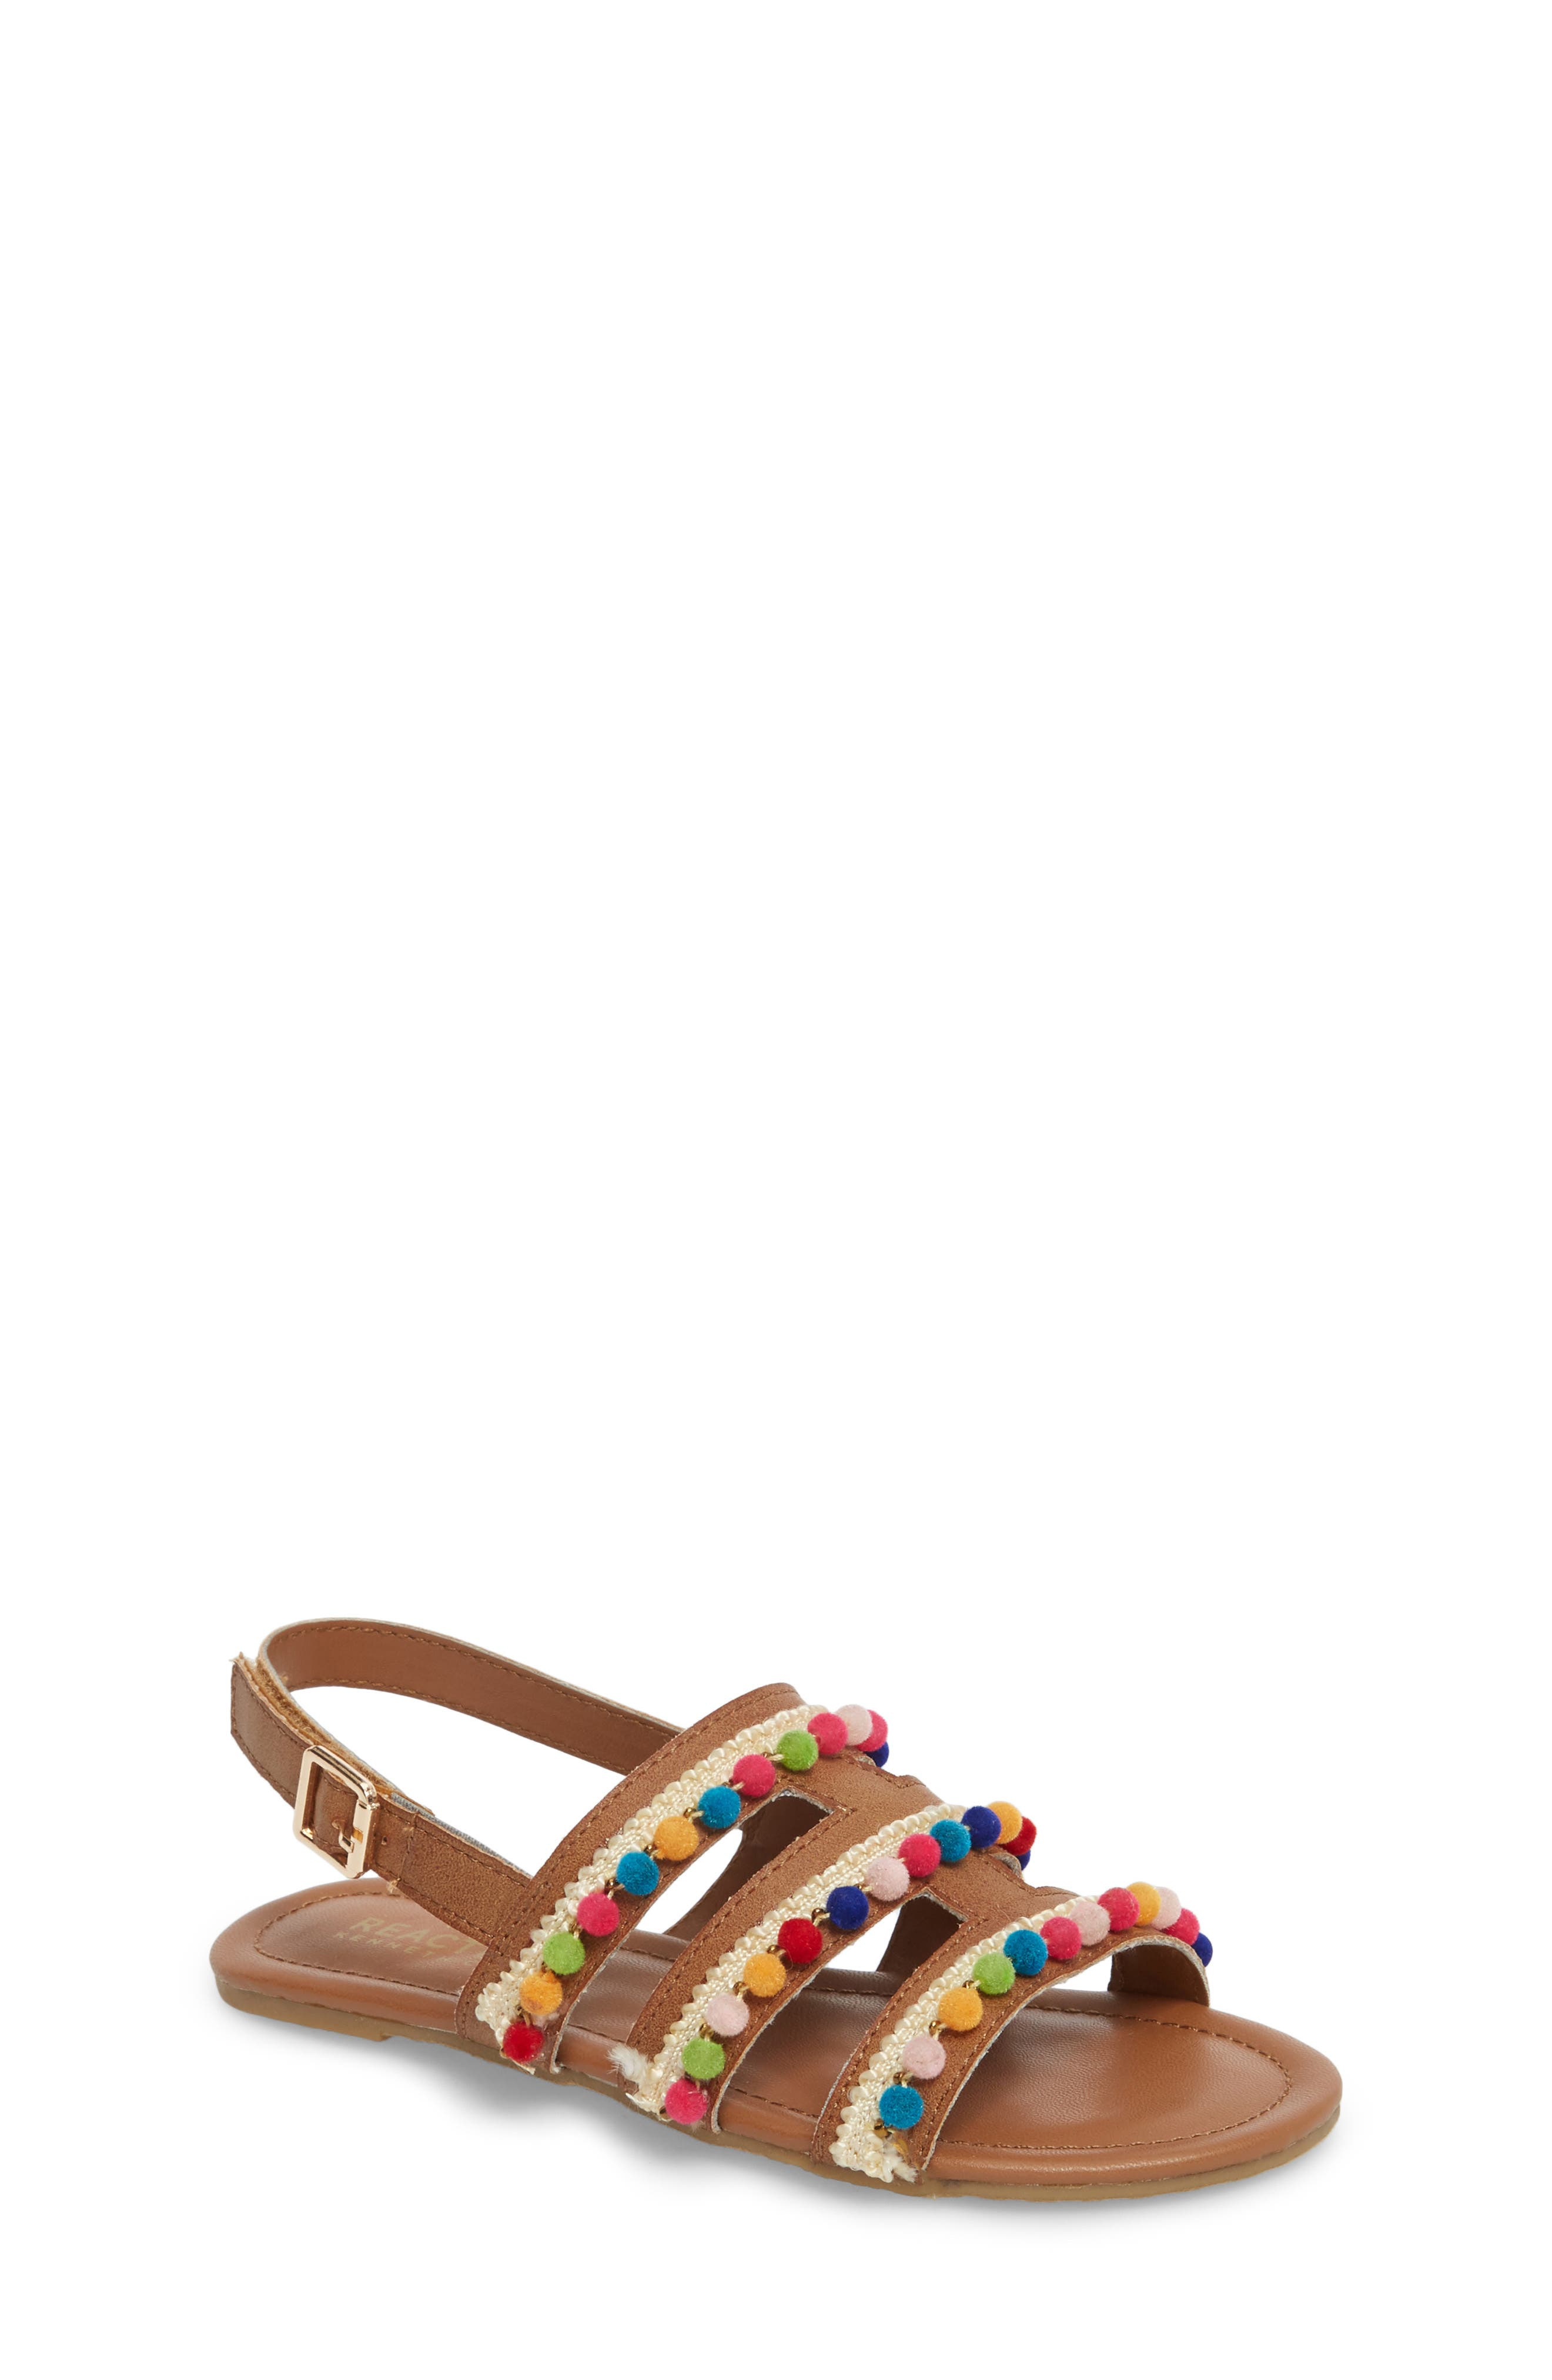 Kiera Pom Embellished Sandal,                             Main thumbnail 1, color,                             259